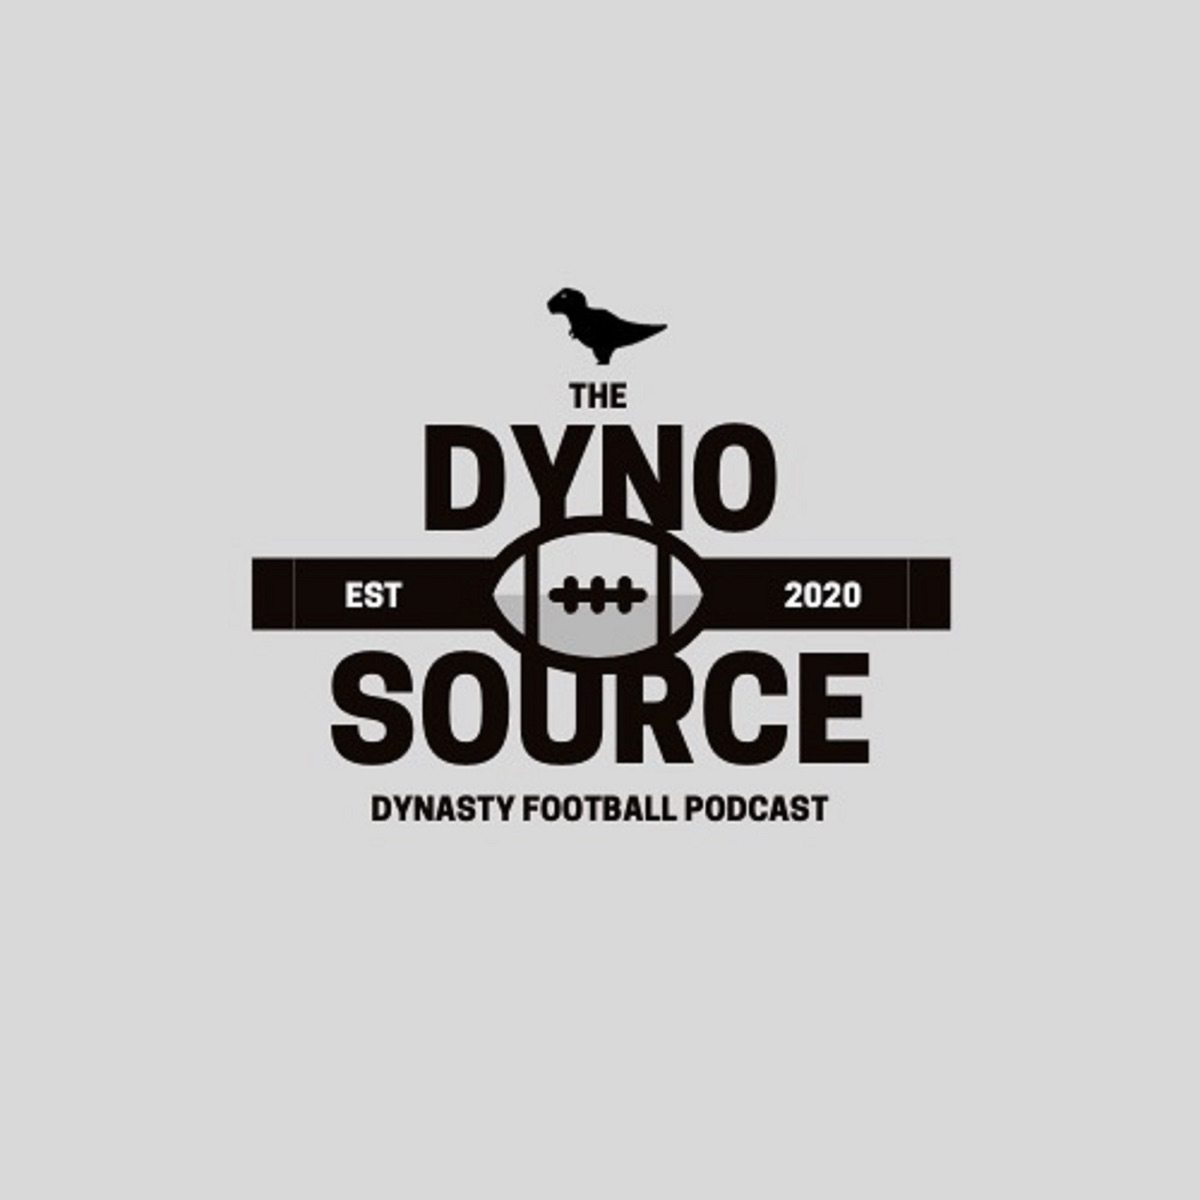 The Dyno Source